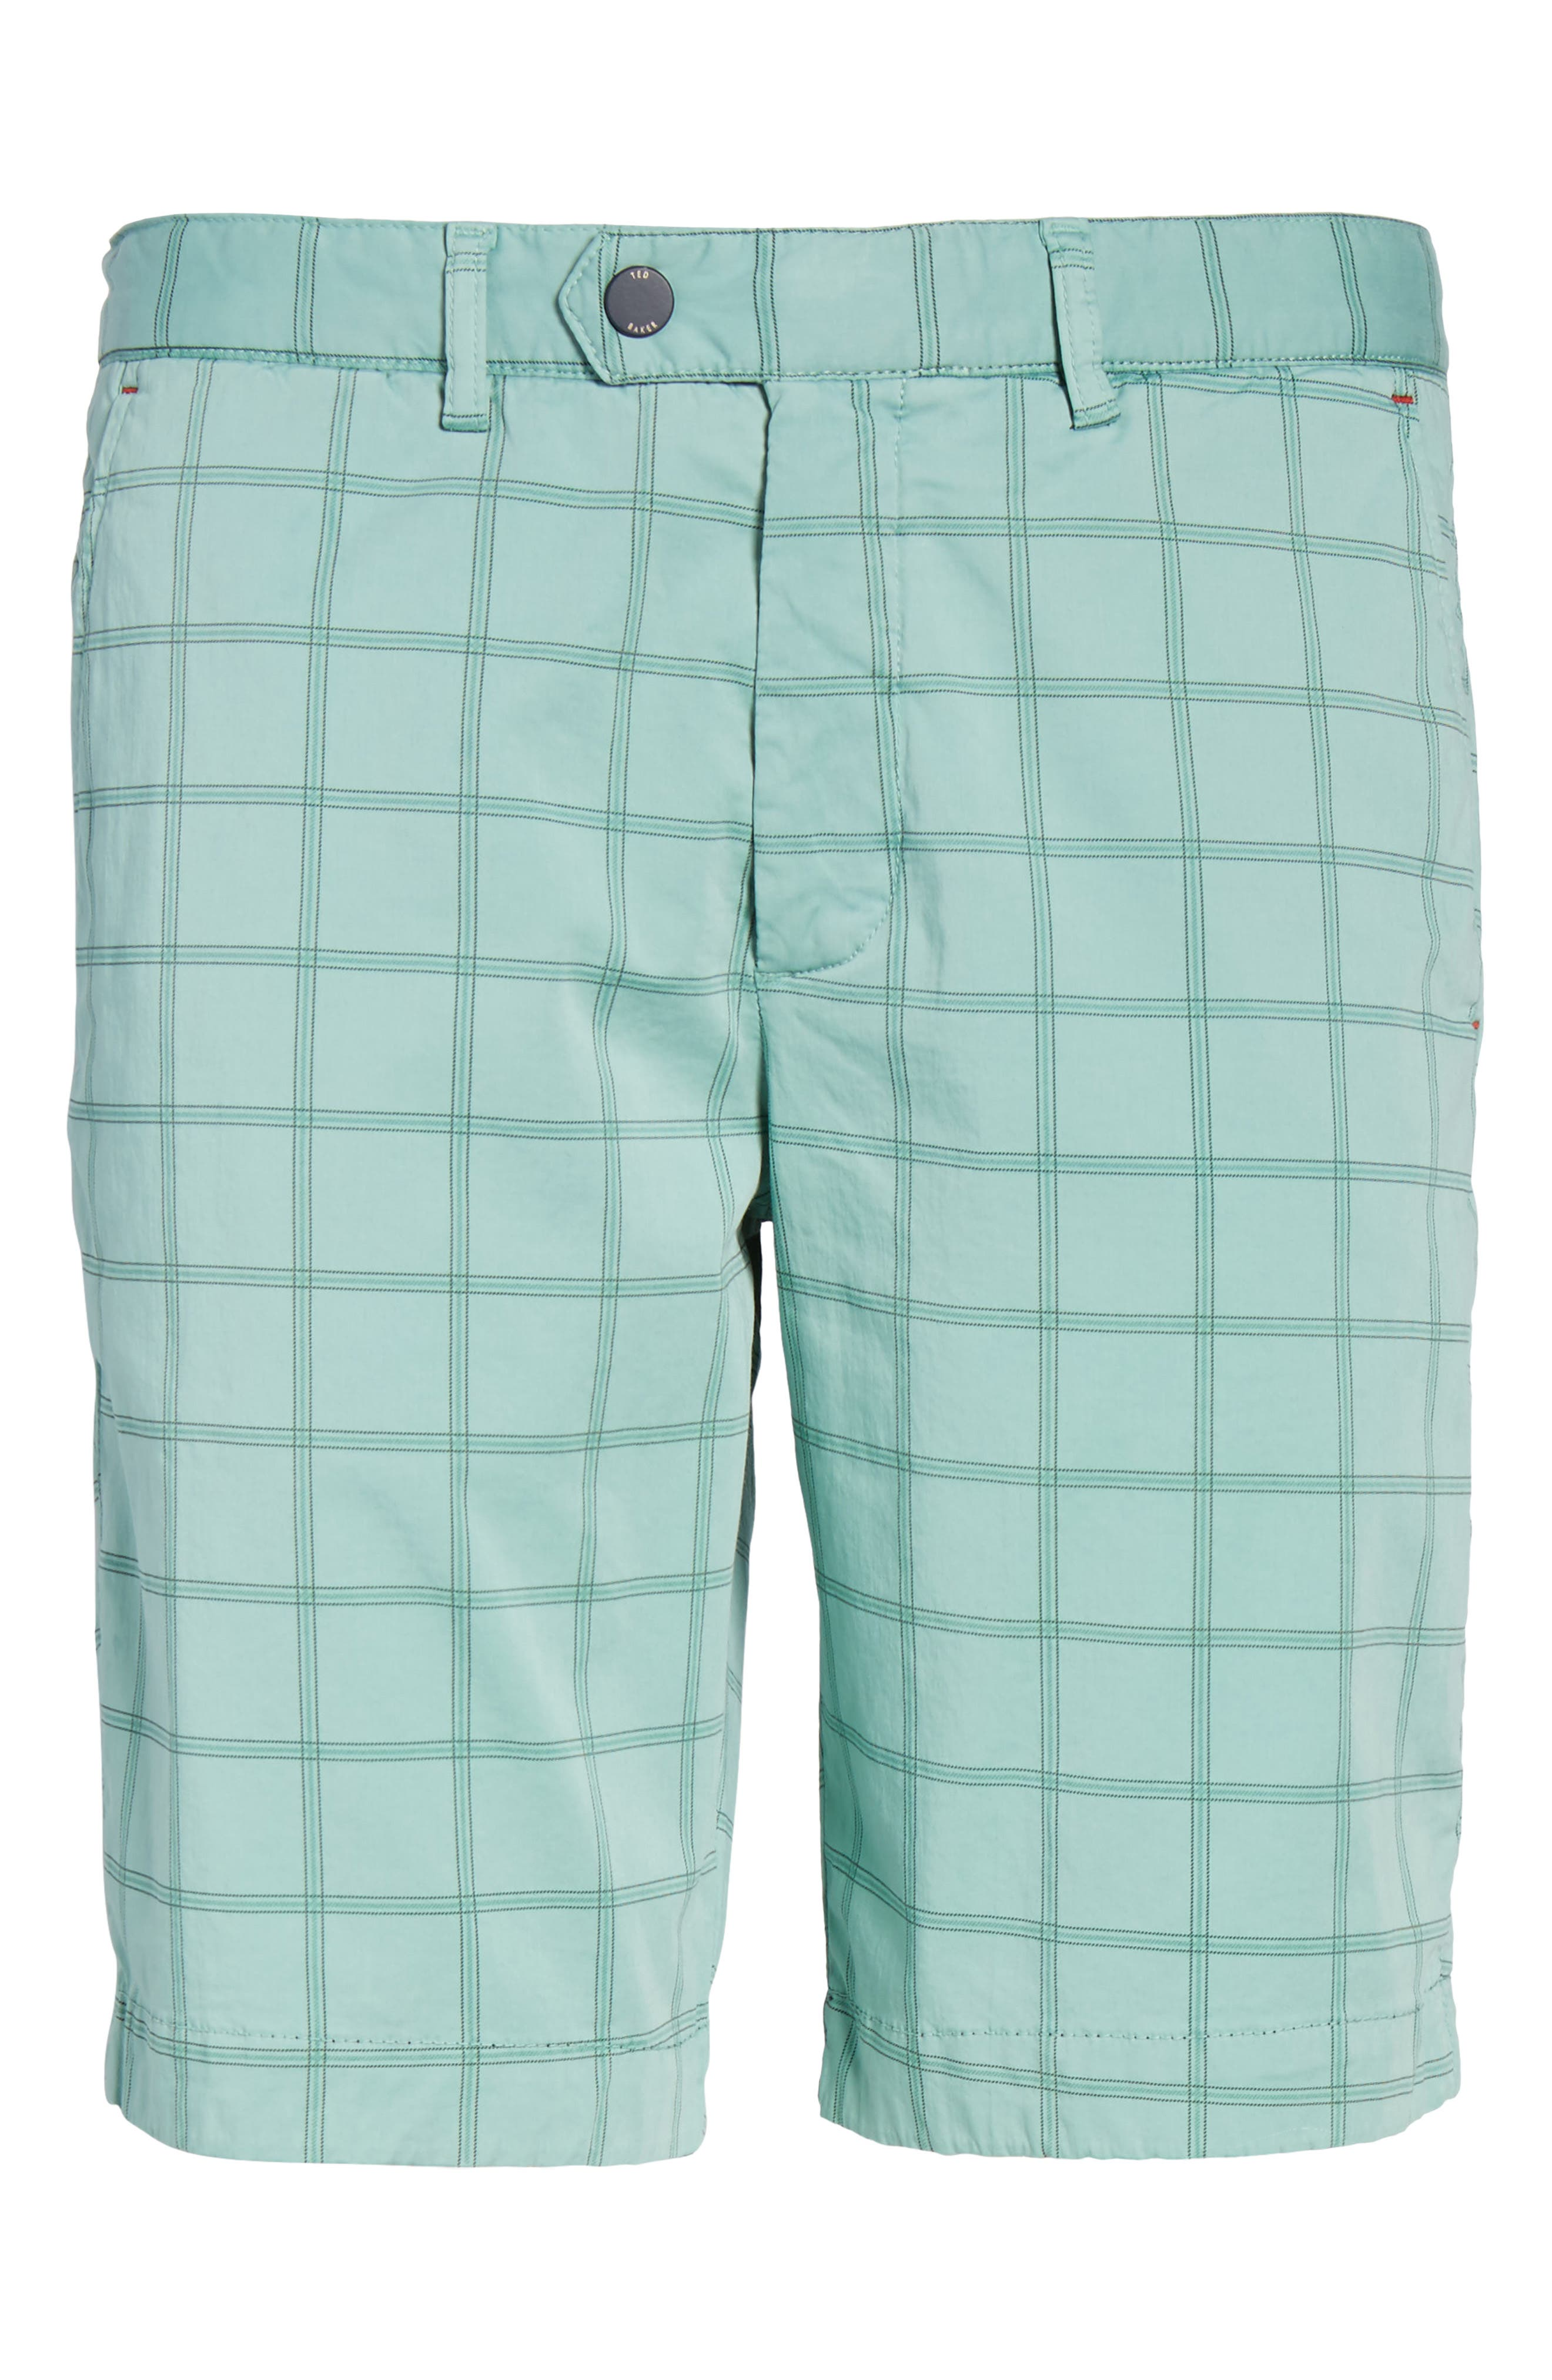 Golfshr Print Golf Shorts,                             Alternate thumbnail 16, color,